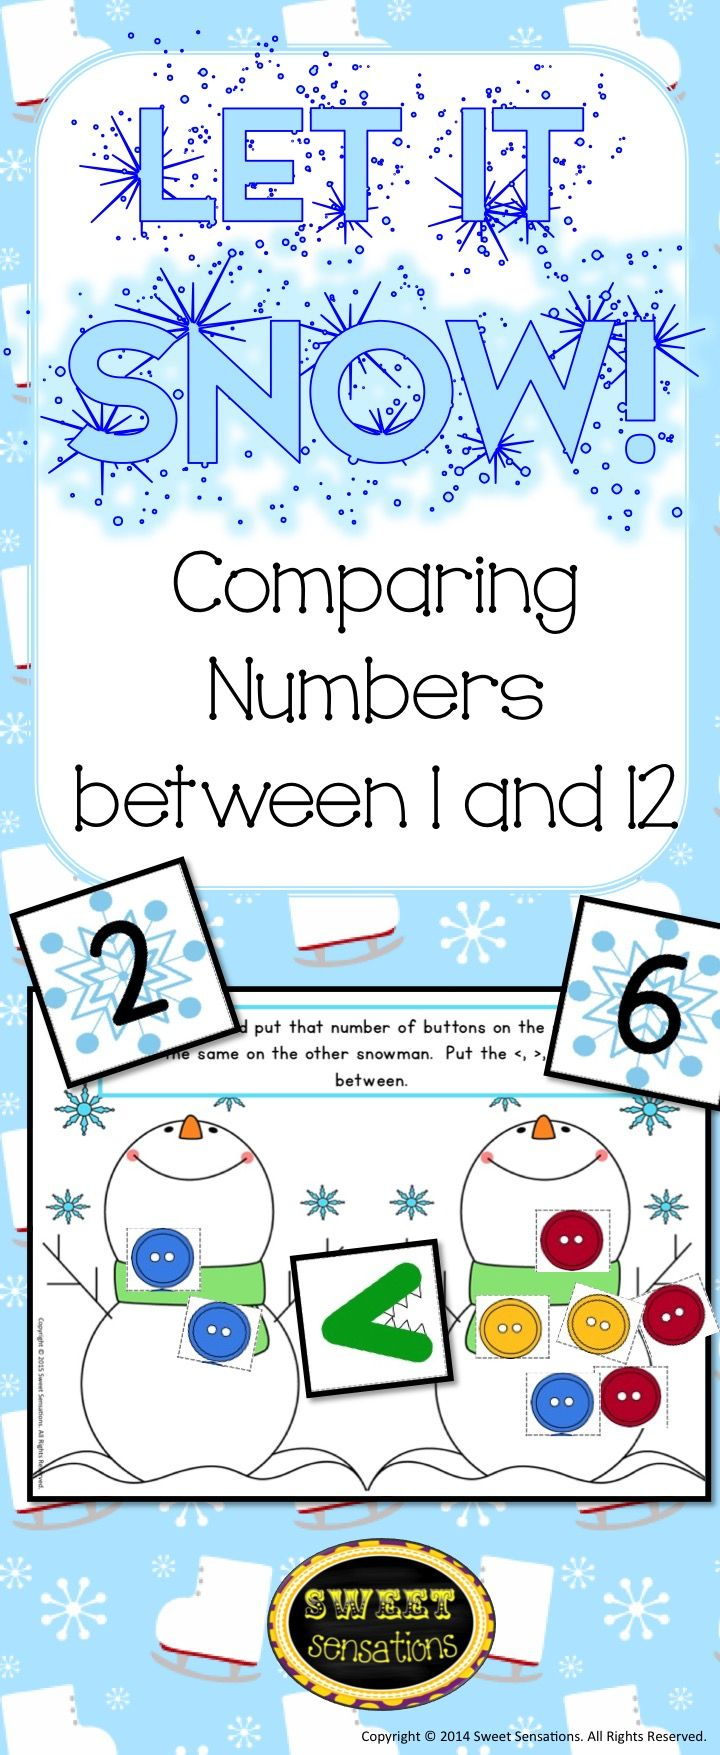 Fun kindergarten math station activity with a snowman theme that can be used year after year from November through March! Students pick a snowflake card and take a corresponding amount of buttons. They place the buttons on the first snowman, and repeat taking another card and placing the correct amount of buttons on the second snowman. The student then needs to decide which symbol goes in between the snowmen, and records with the correct symbol included in the pack.